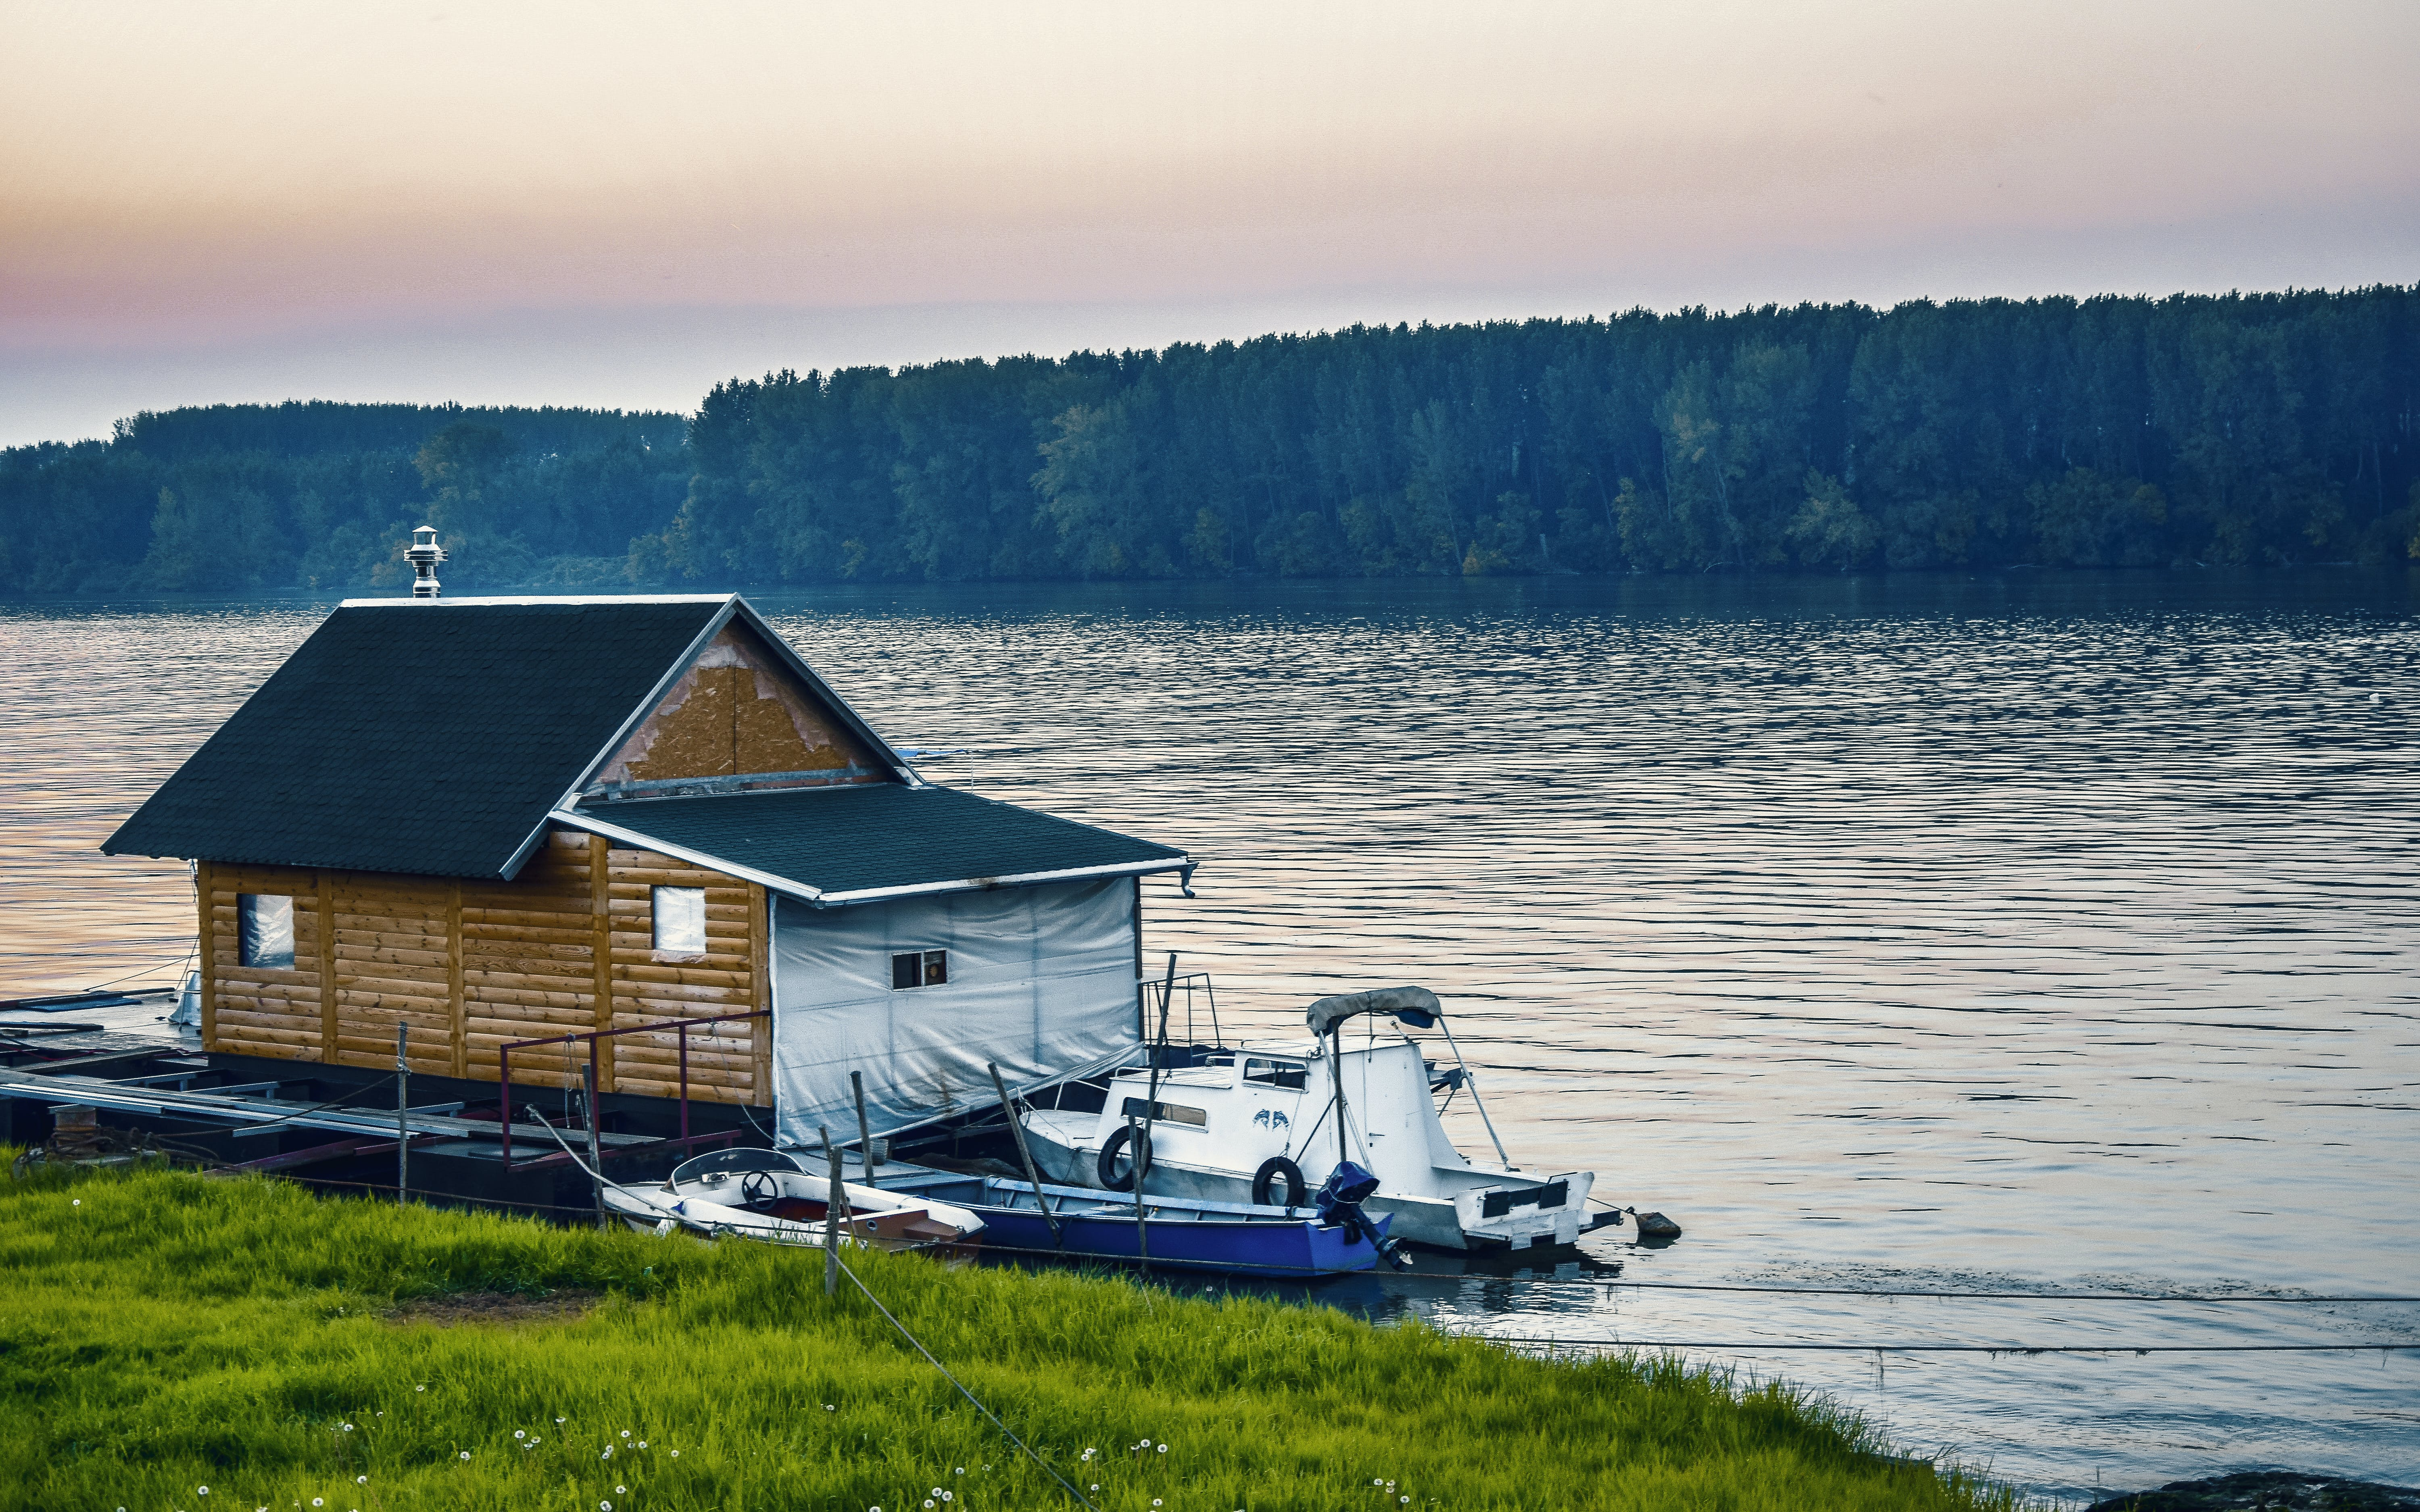 White Boat Beside Wooden House on Water Near Forest